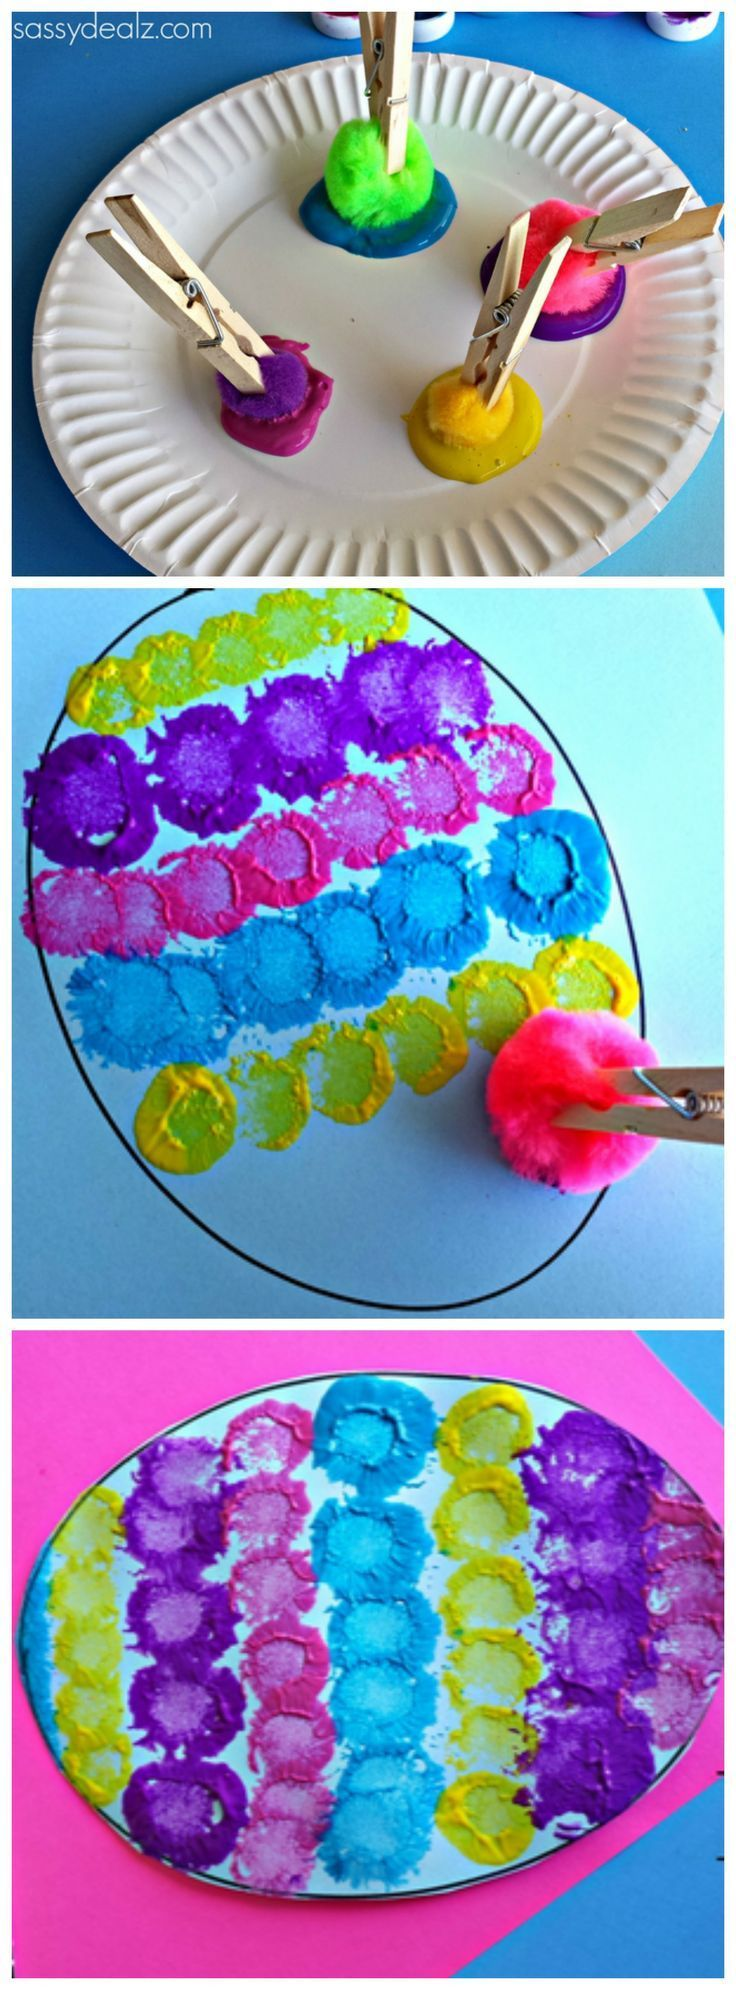 121 best crafts images on pinterest day care crafts for kids and